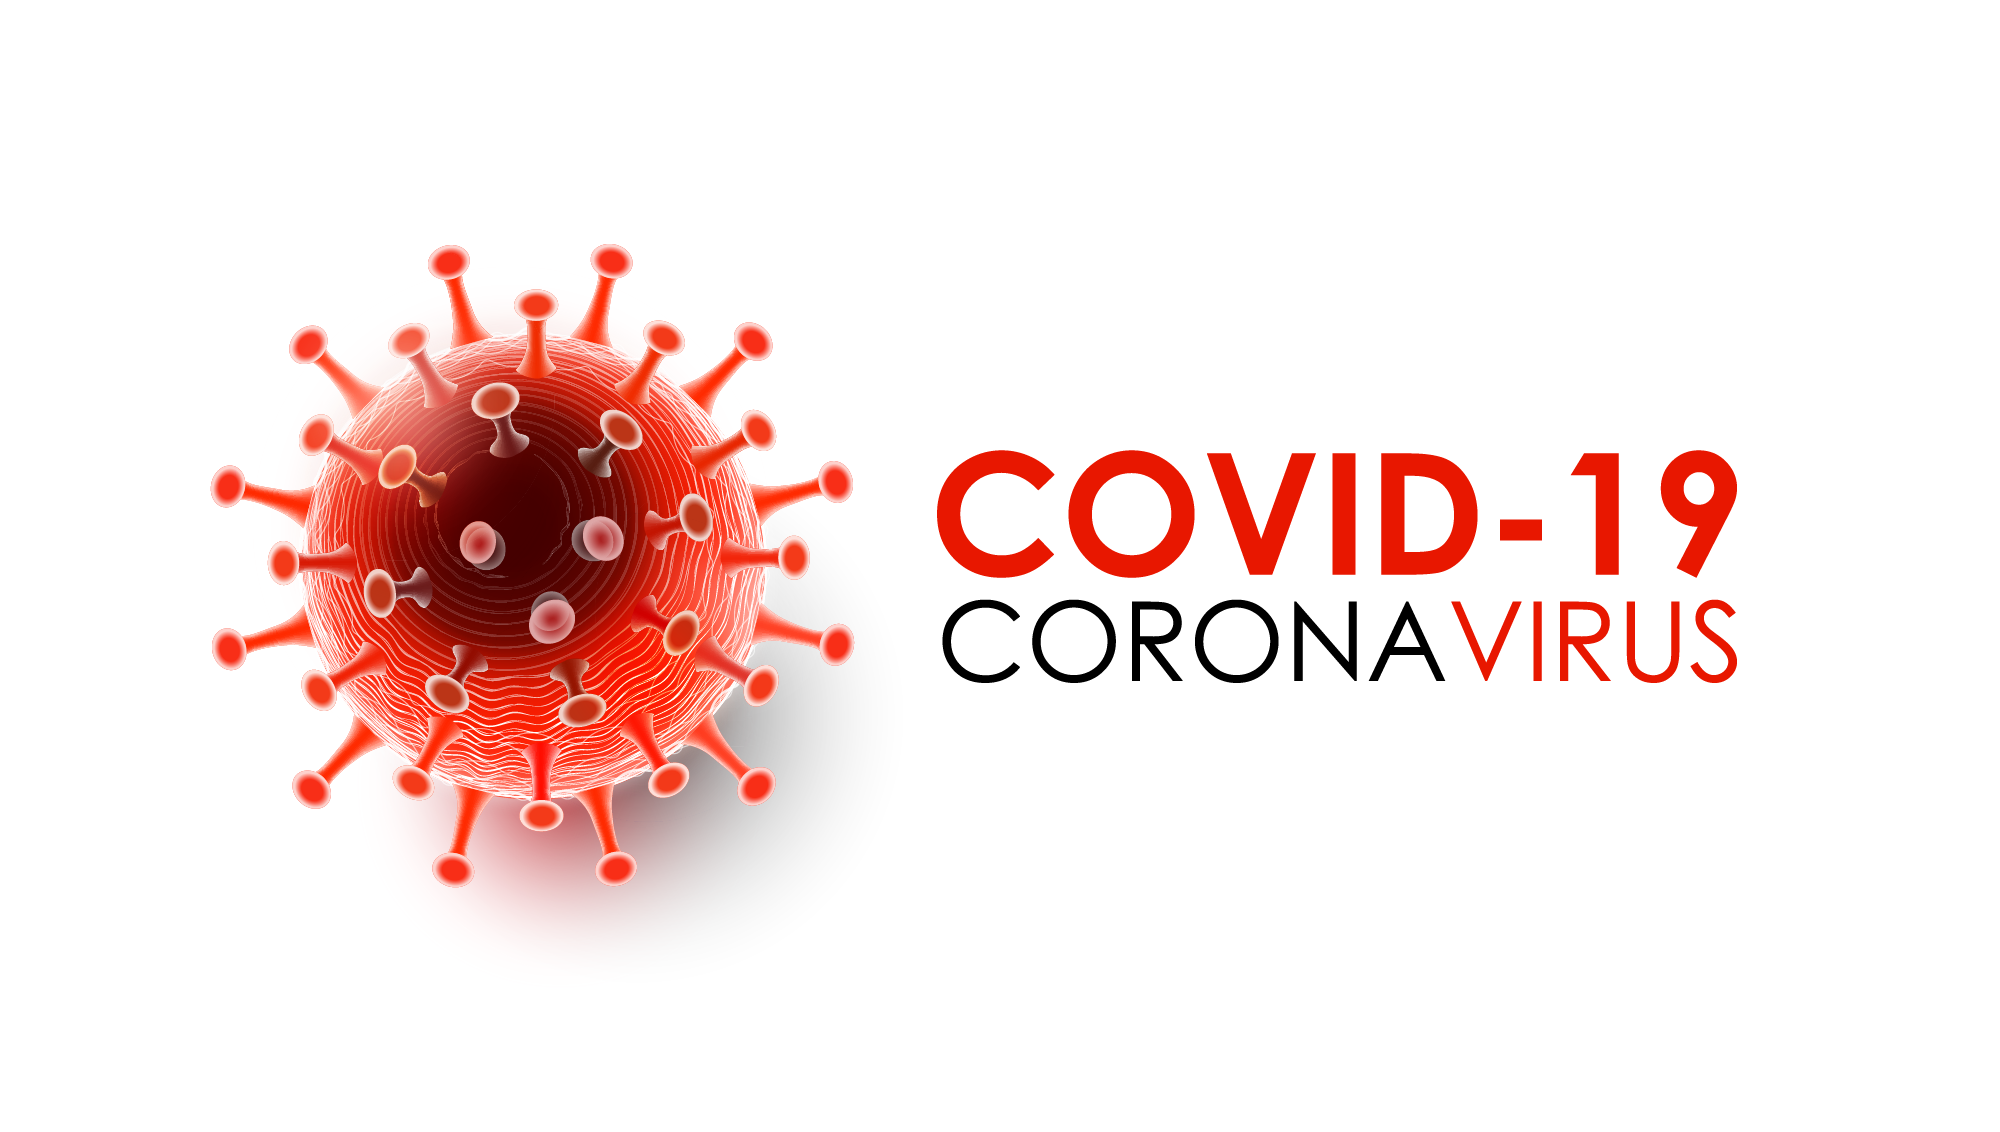 4,343 new Covid-19 cases reported in Tamil Nadu